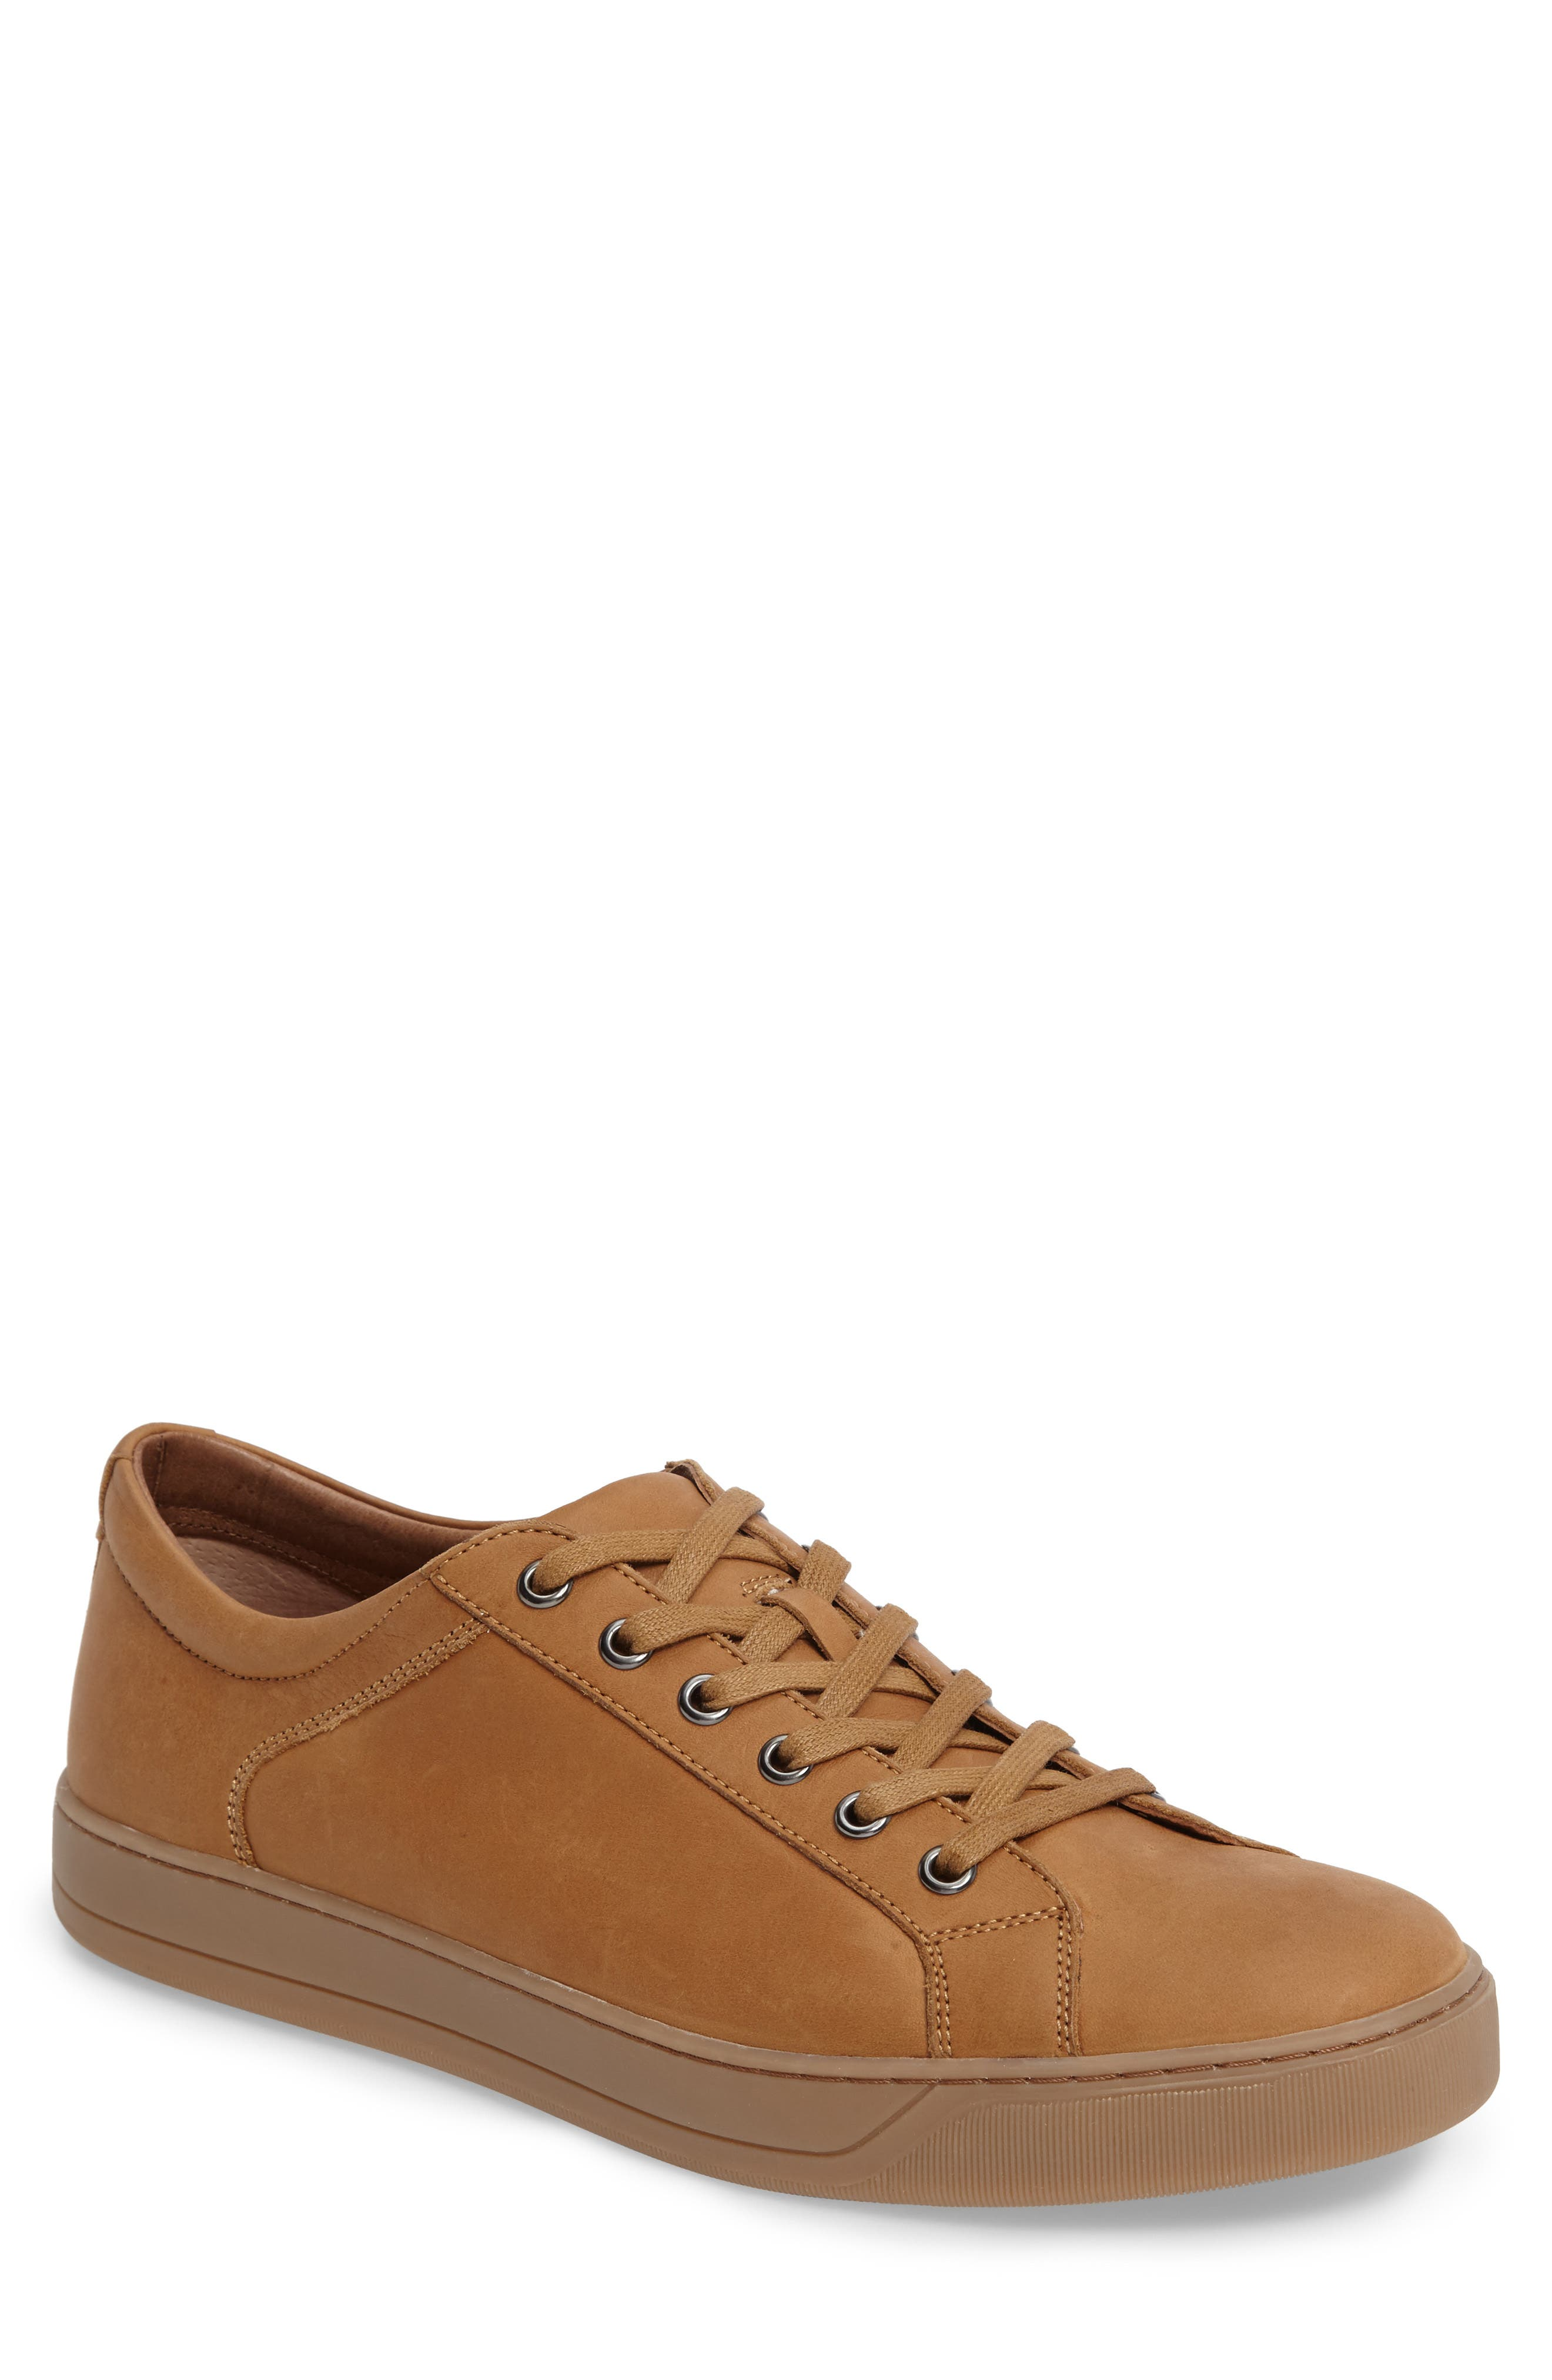 Allister Sneaker,                         Main,                         color, Natural Leather